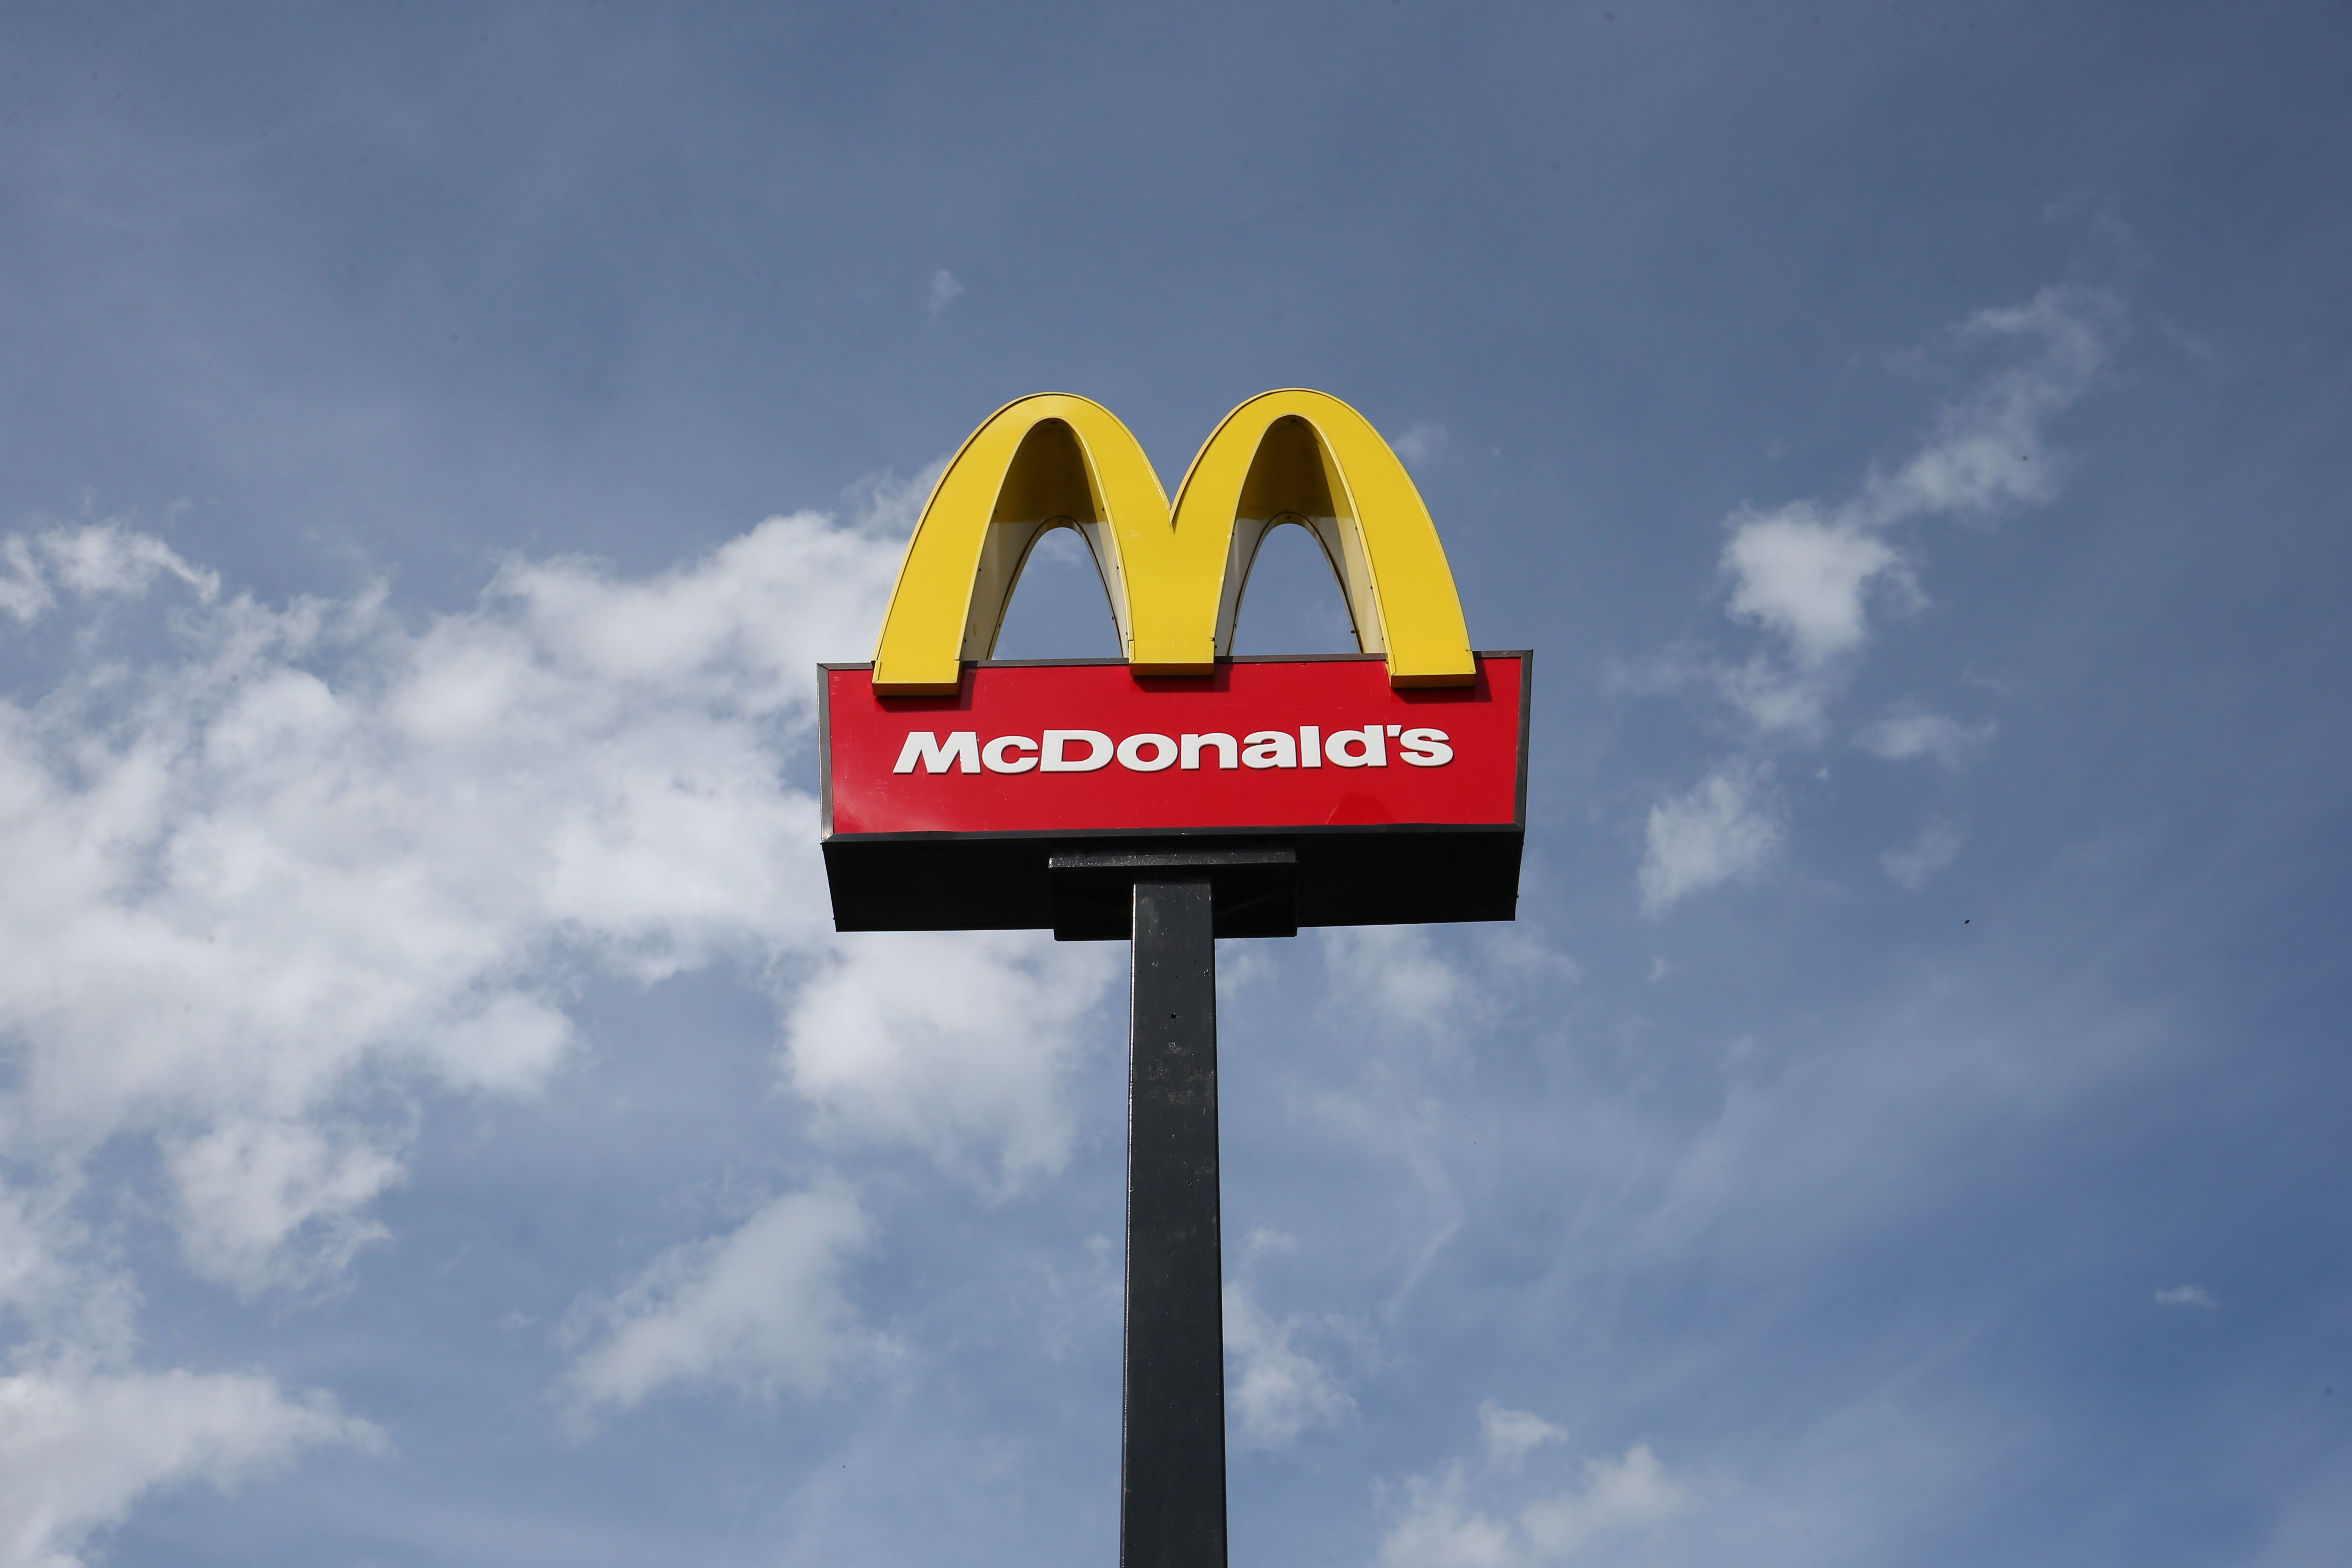 Mcdonalds Hours Christmas Eve 2021 Mcdonald S New Year S Eve And Day 2021 Hours Is Mcdonald S Open On New Year S